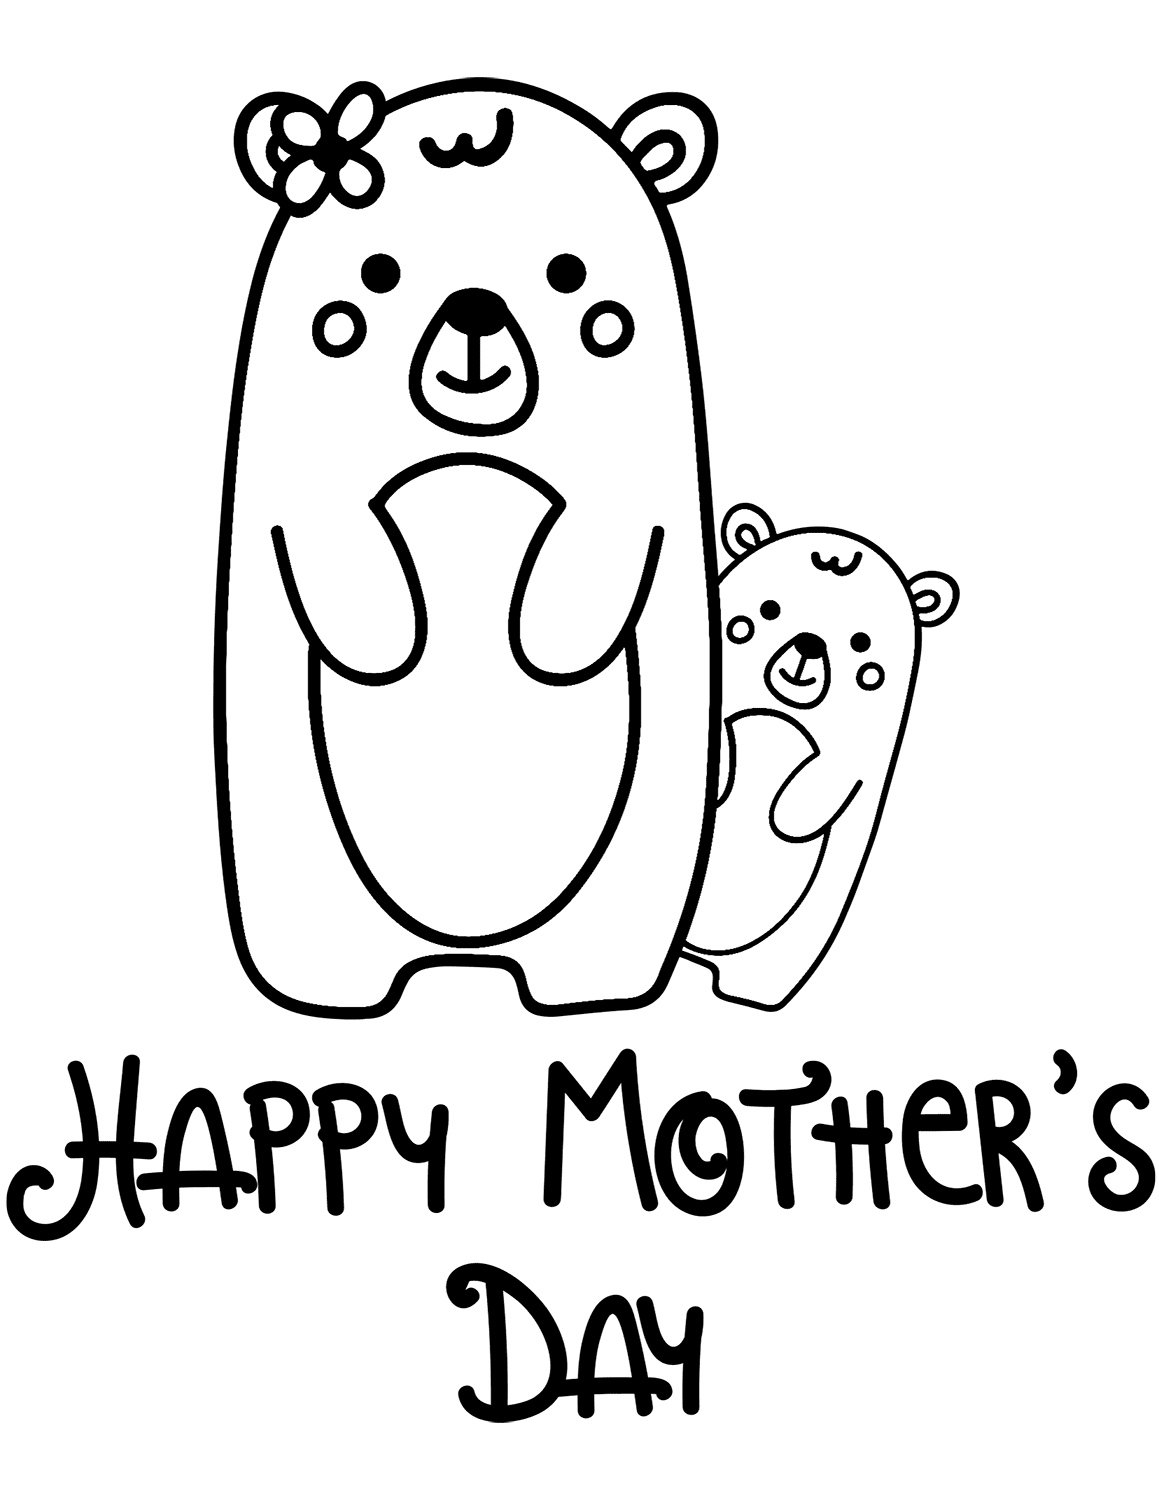 Elegant Happy Motheru0027s Day Greetings: Mothers Day Coloring Pages ...